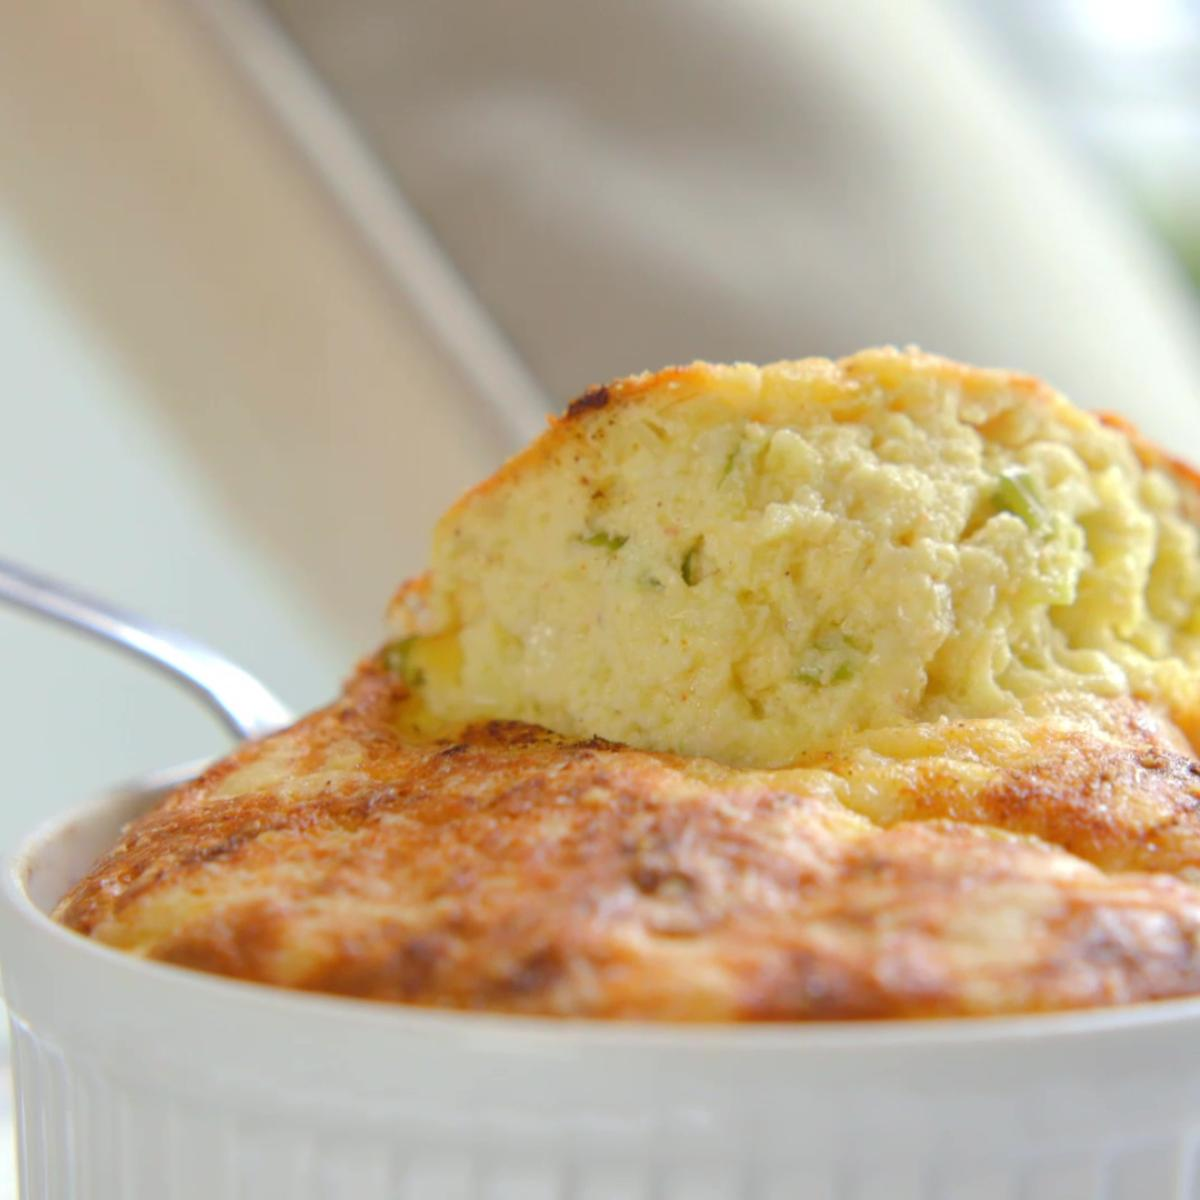 Cs potato cheese and spring onion souffle